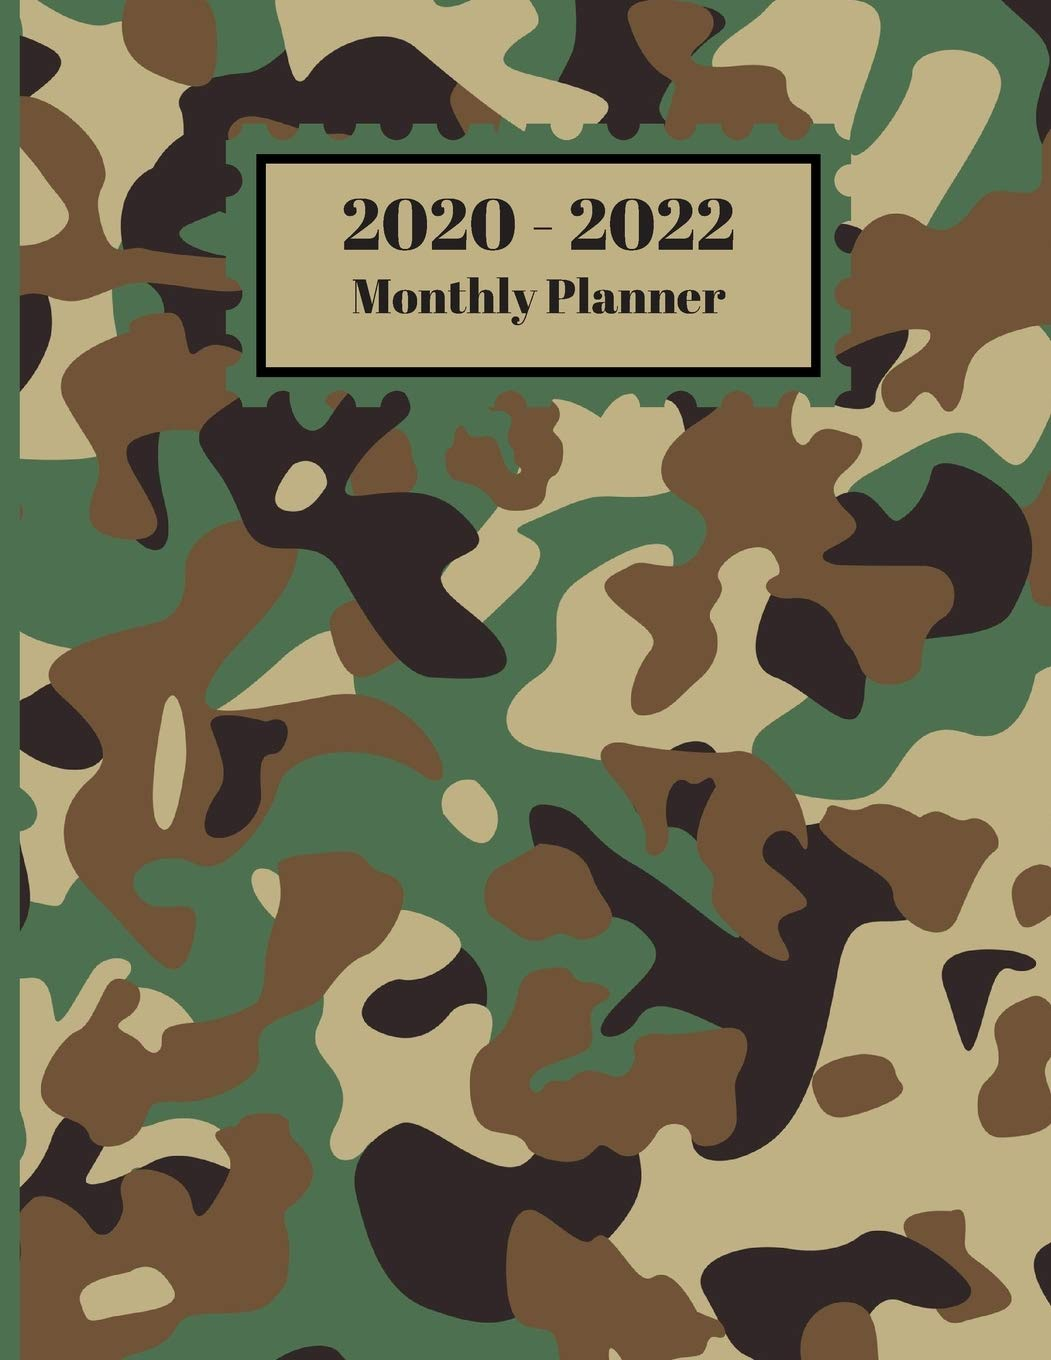 Hunter Fall 2022 Calendar.2020 2022 Monthly Planner Camouflage Military Hunter Design Cover 2 Year Planner Appointment Calendar Organizer And Journal Notebook Size 8 5 X 11 Dumkist 9781689629799 Amazon Com Books